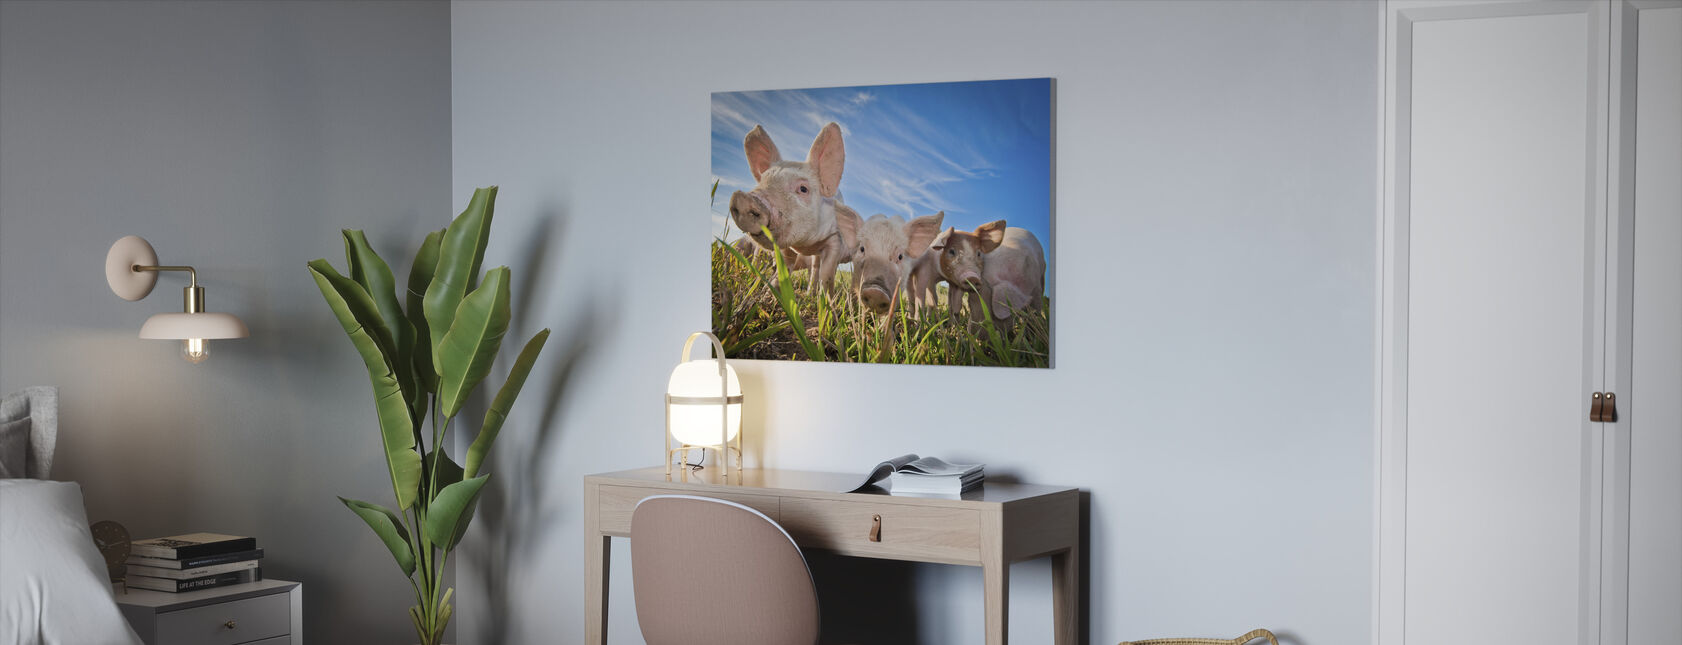 Nosy - Canvas print - Office